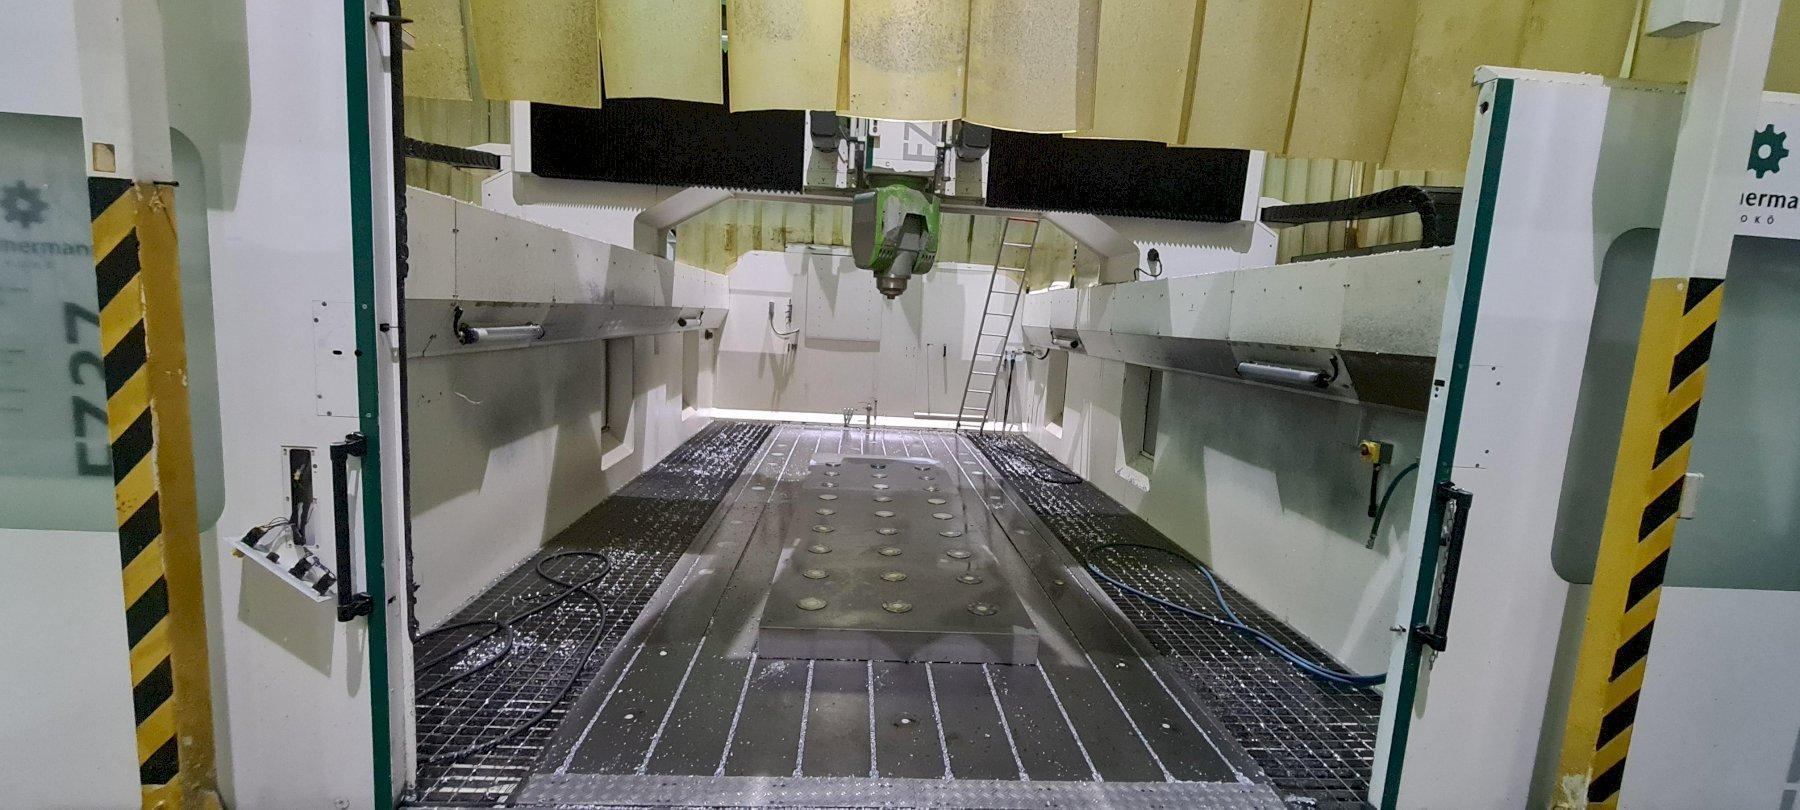 Zimmermann FZ37 5-axis CNC Bridge Mill